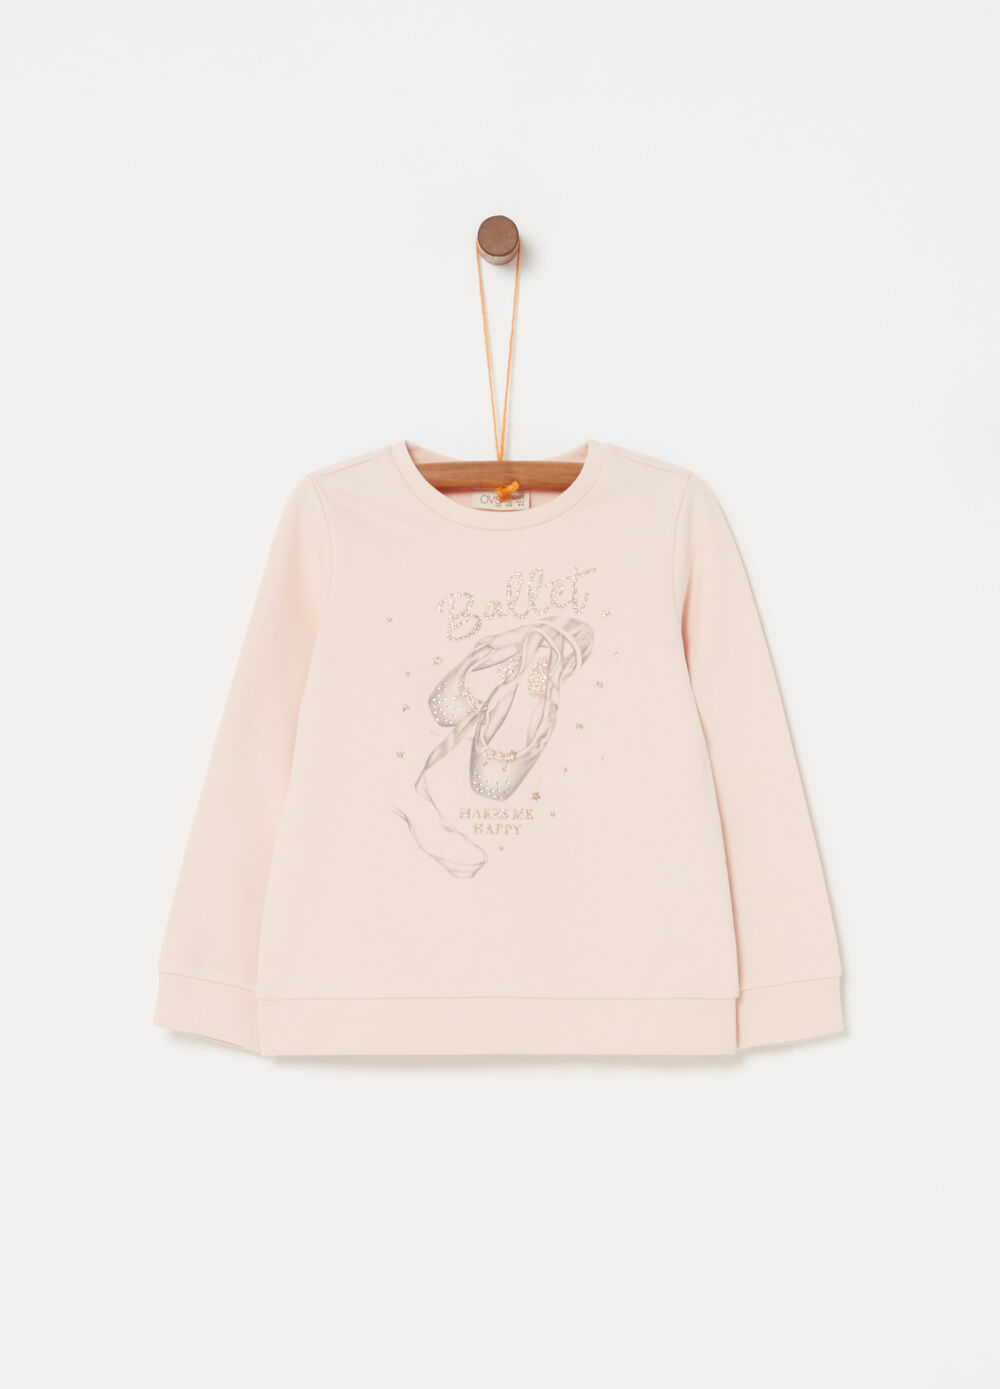 Sweatshirt in 100% cotton with ballerina print